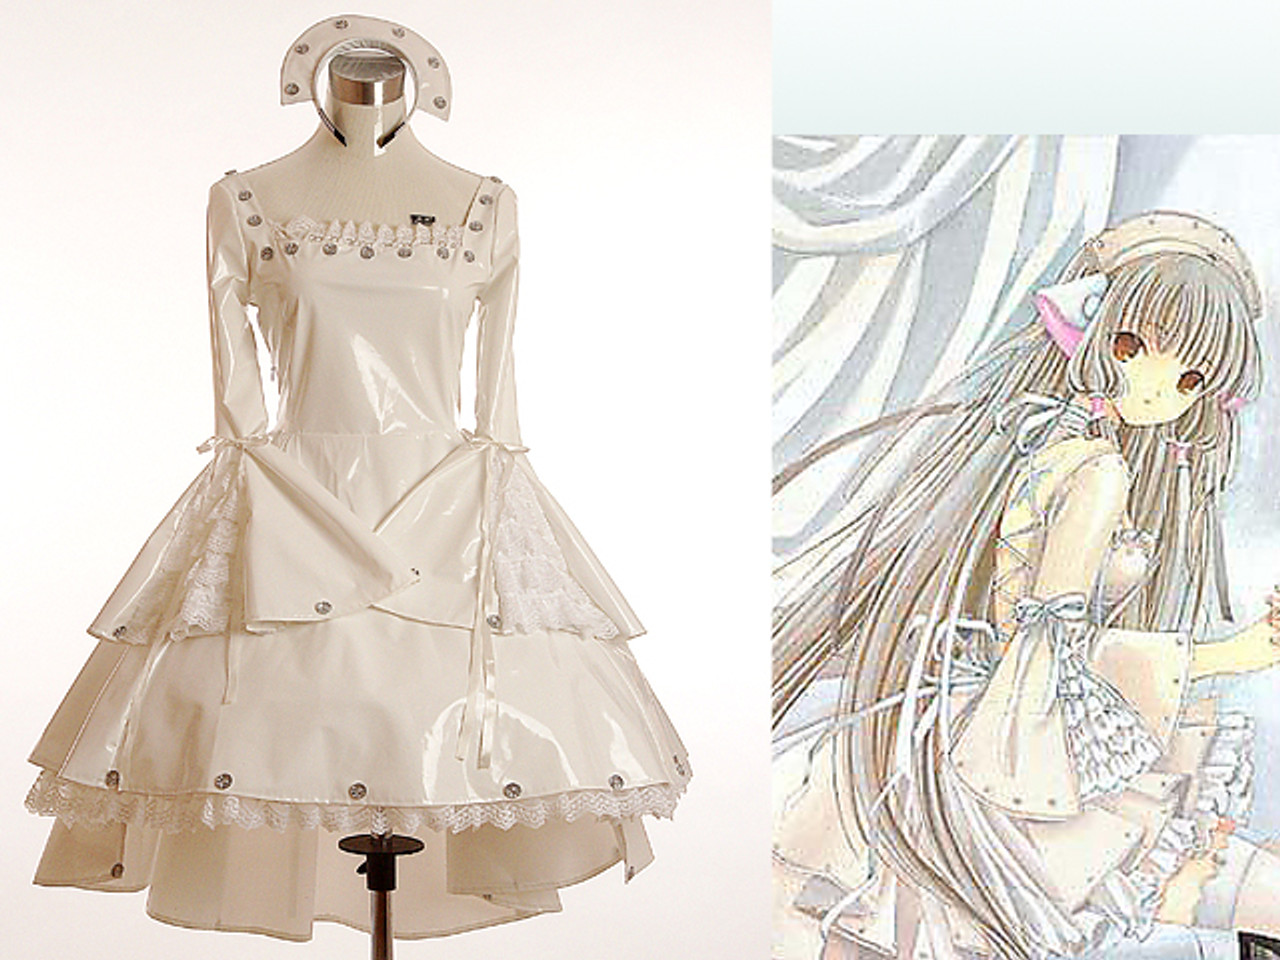 Chii Brown Dress Cosplay Costume from Chobits